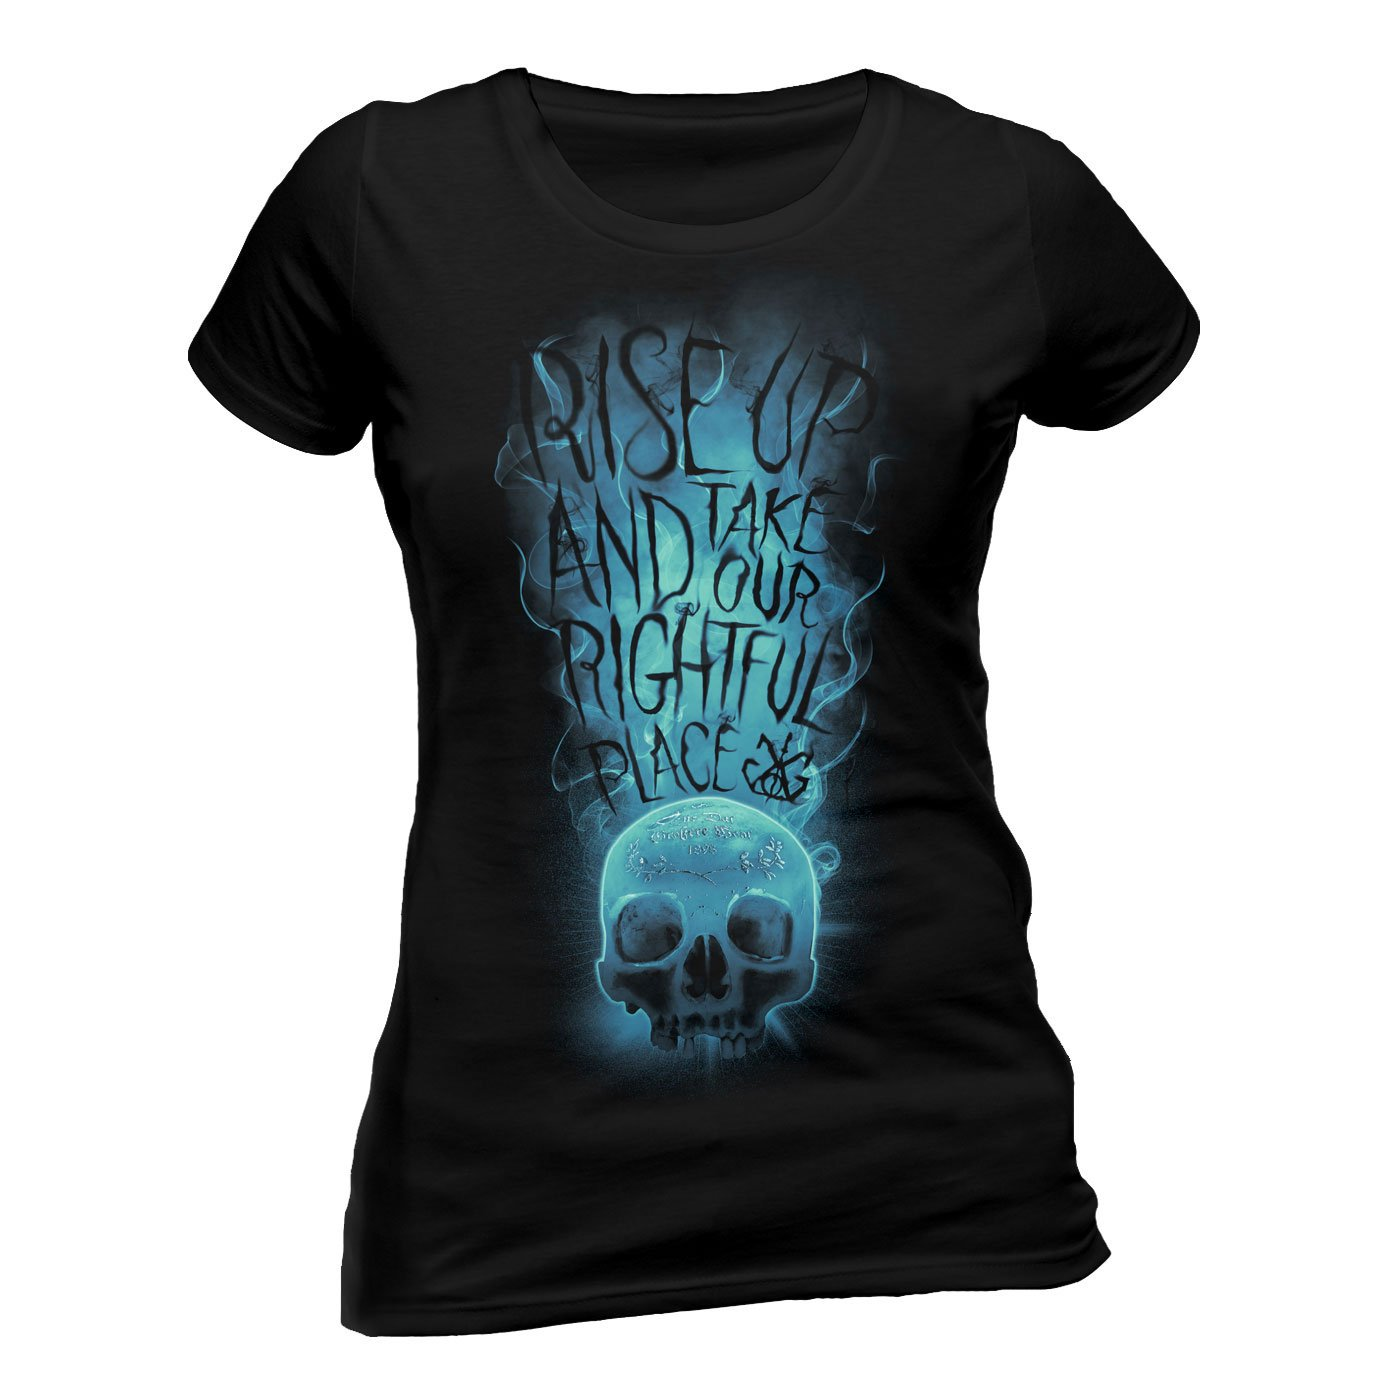 Fantastic Beasts 2 Ladies T-Shirt Rise Up Size S